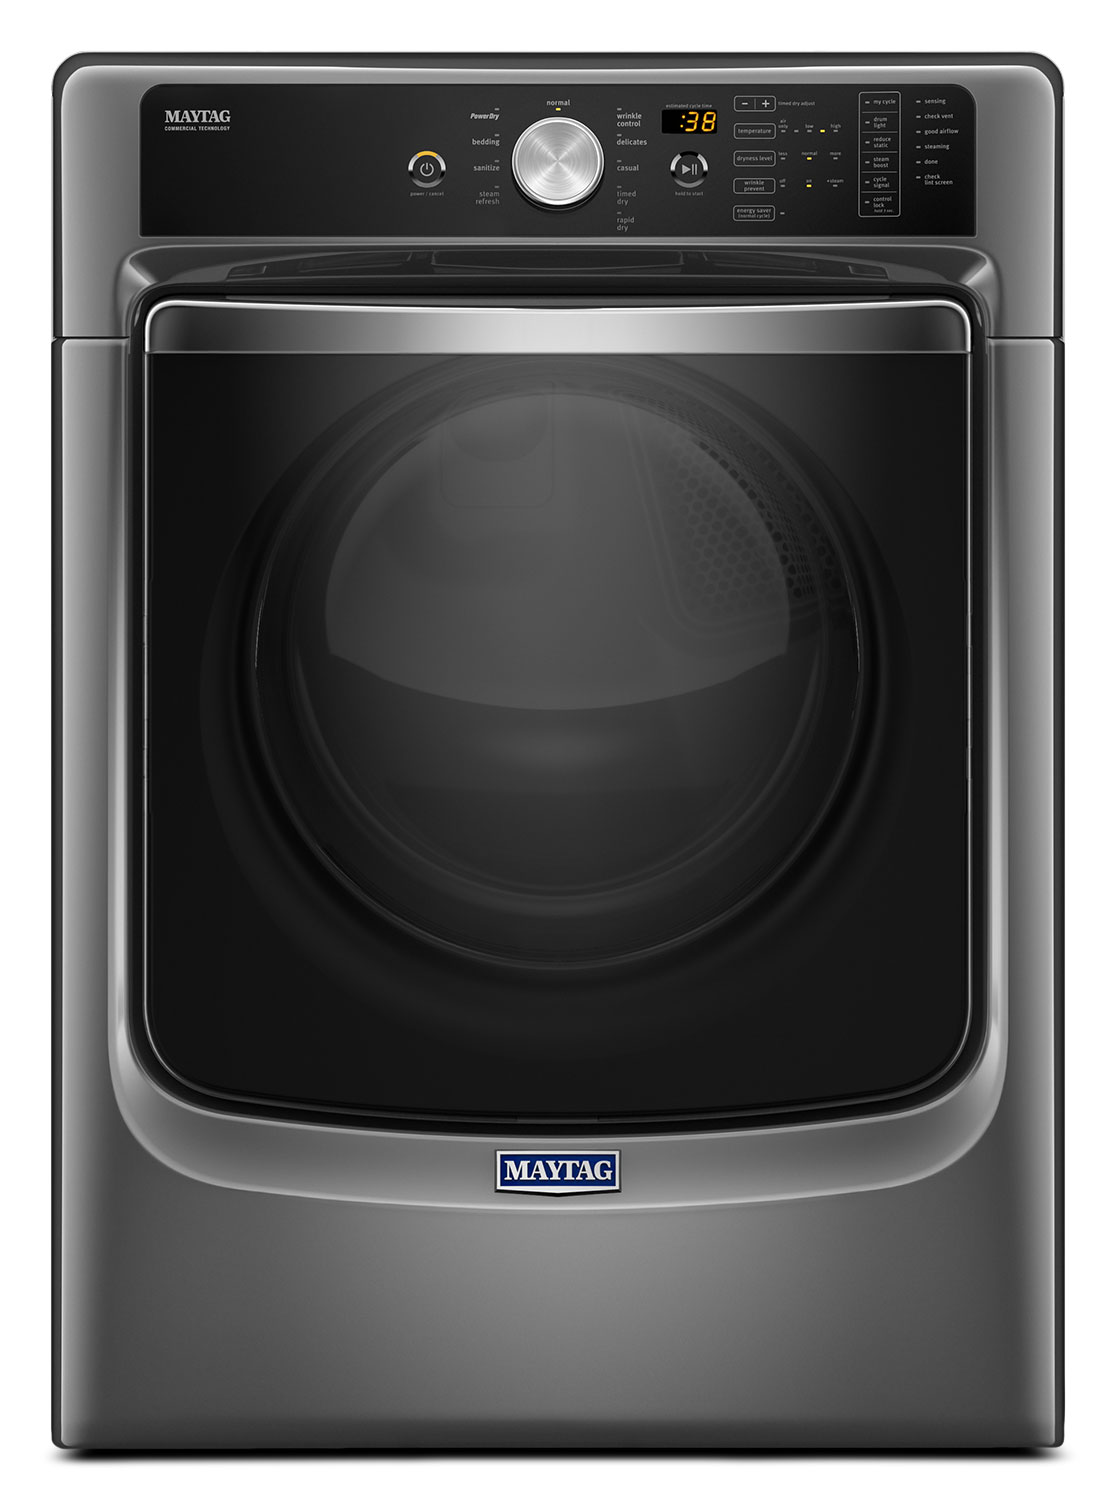 Washers and Dryers - Maytag 7.4 Cu. Ft. Electric Dryer – YMED8200FC